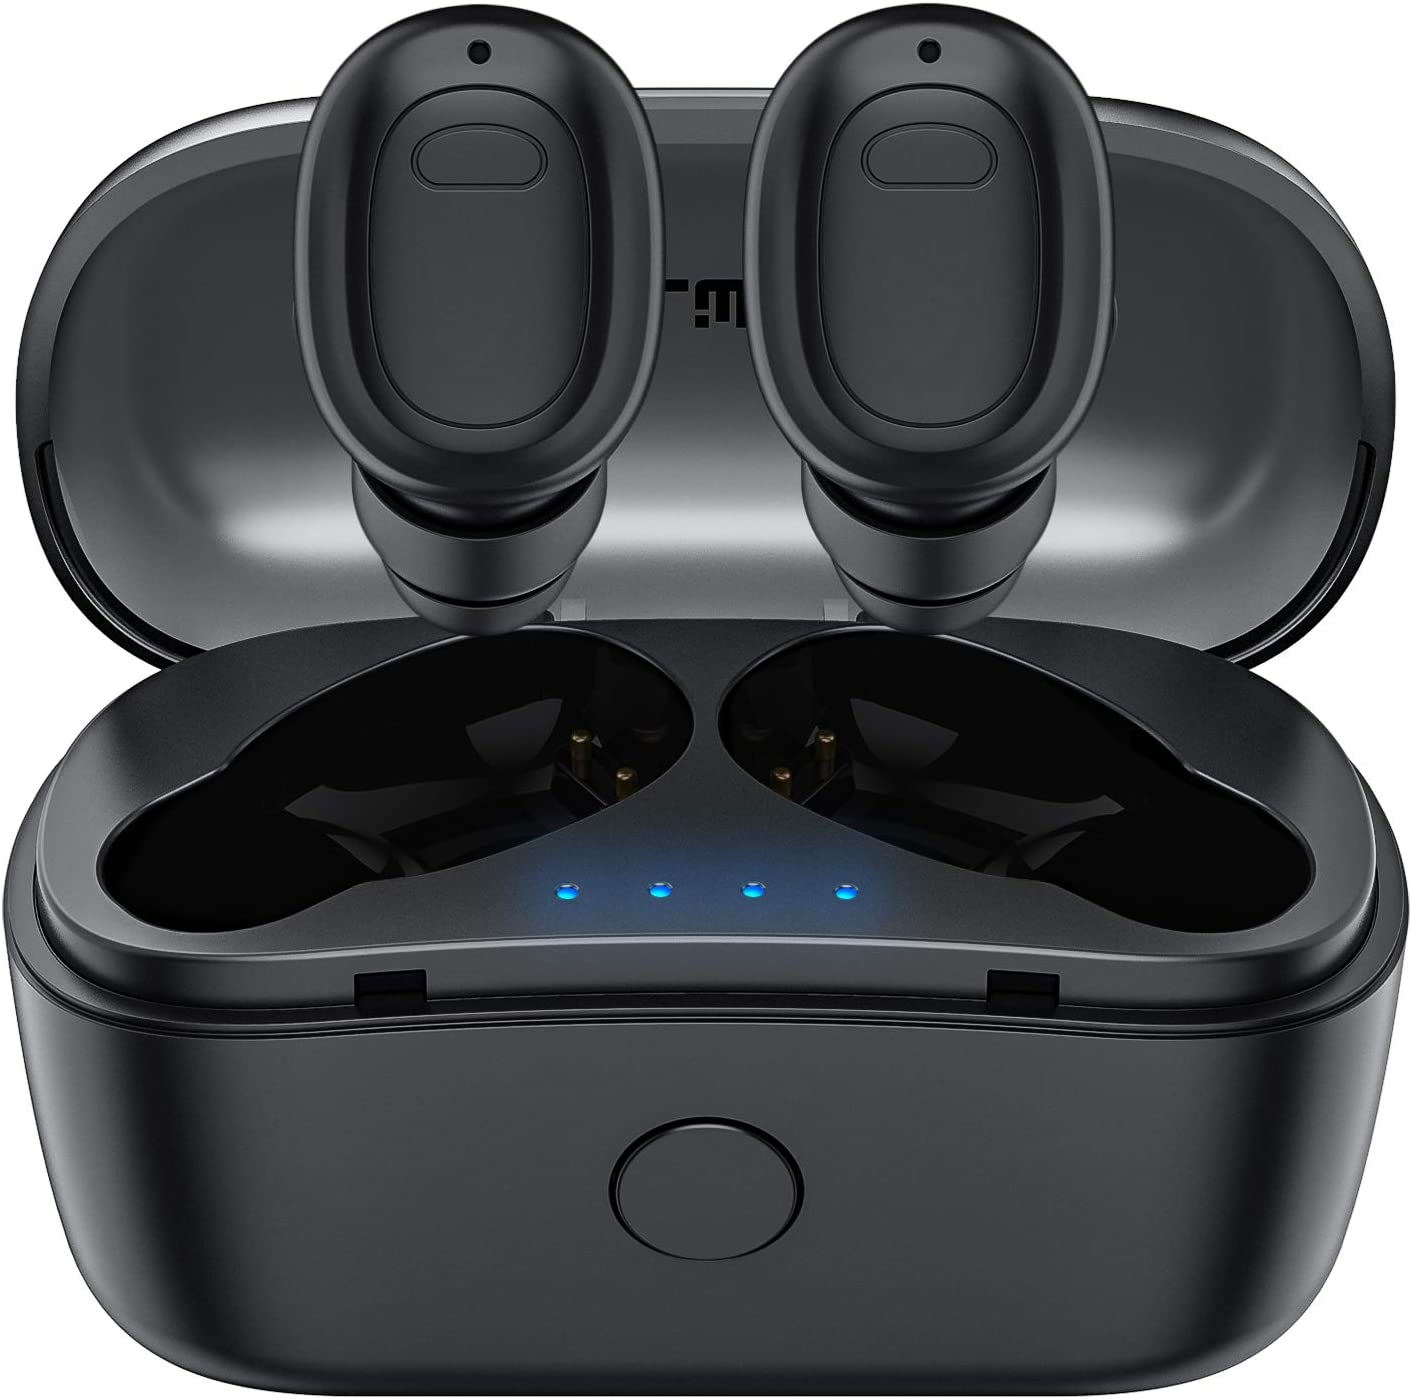 True Wireless Earbuds, Falwedi 6H Continuous 40H Cyclic Playtime 5.0 Bluetooth Earbuds, Binaural Stereo Deep Bass Wireless Earbuds with 2 Mic and Charging Case for iPhone and Android